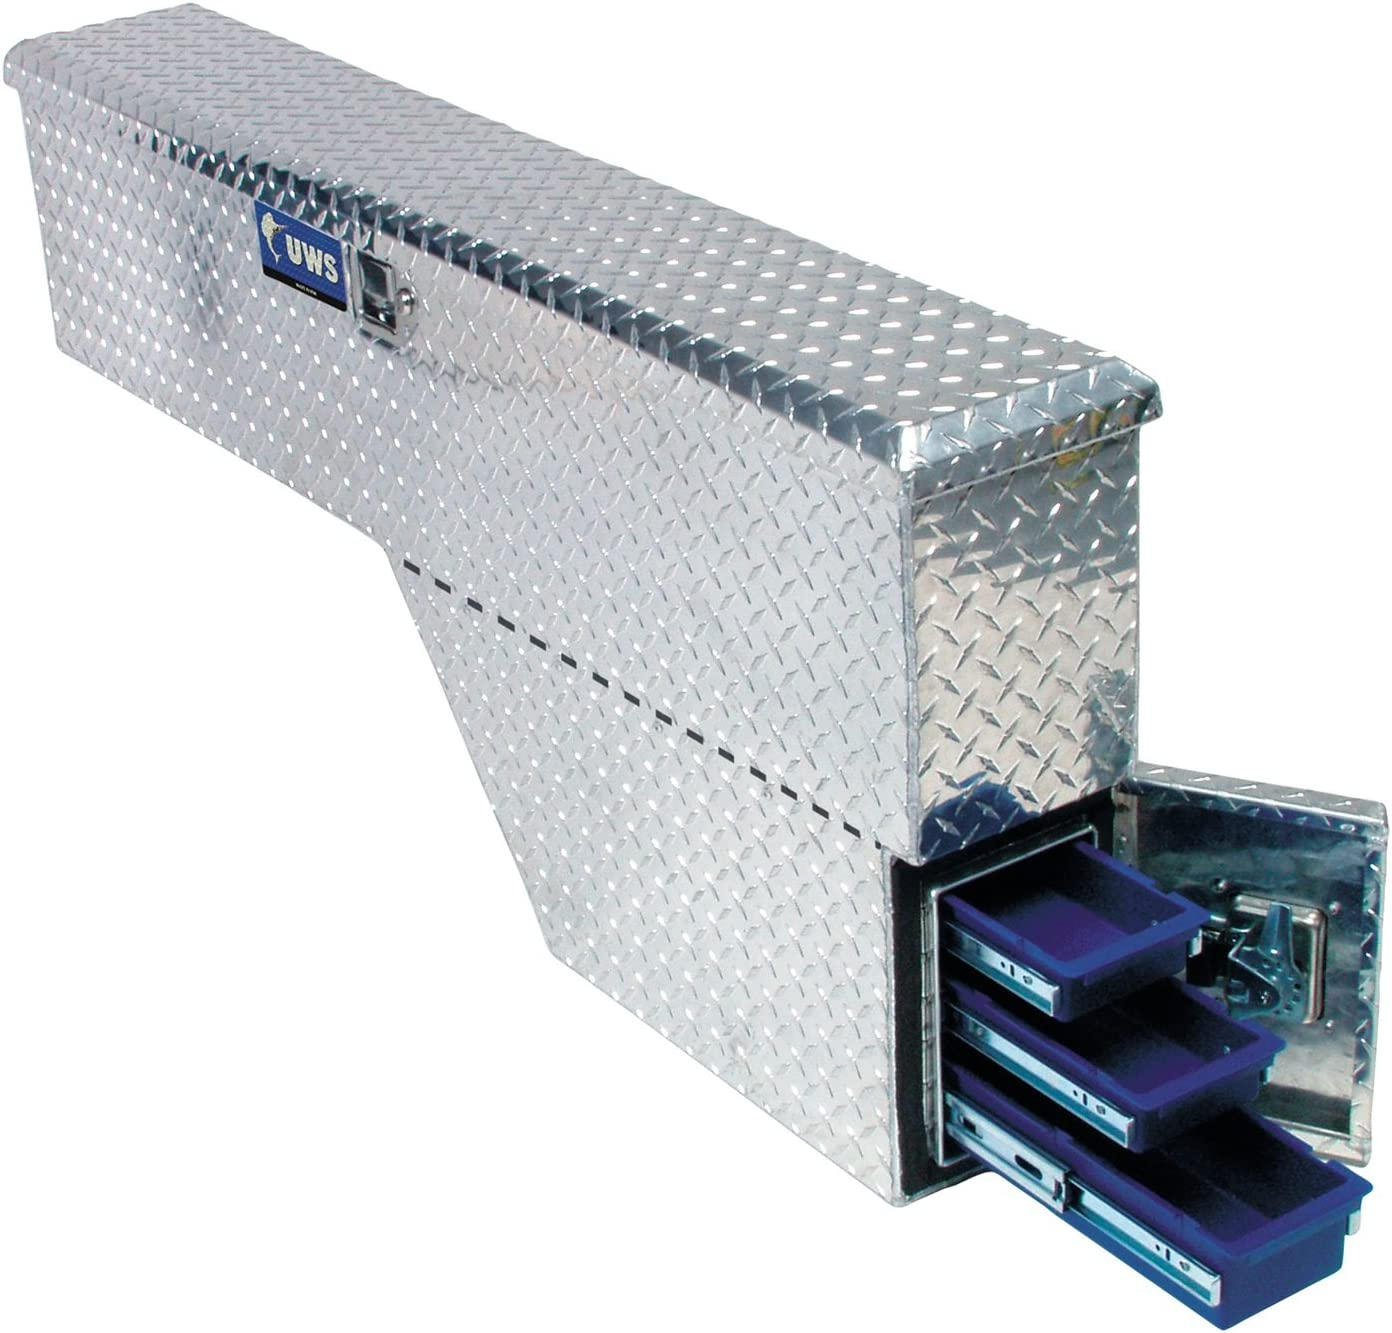 UWS FW-48-DS-P Passenger Side Credence Fenderwell Sli Drawer Toolbox with Price reduction